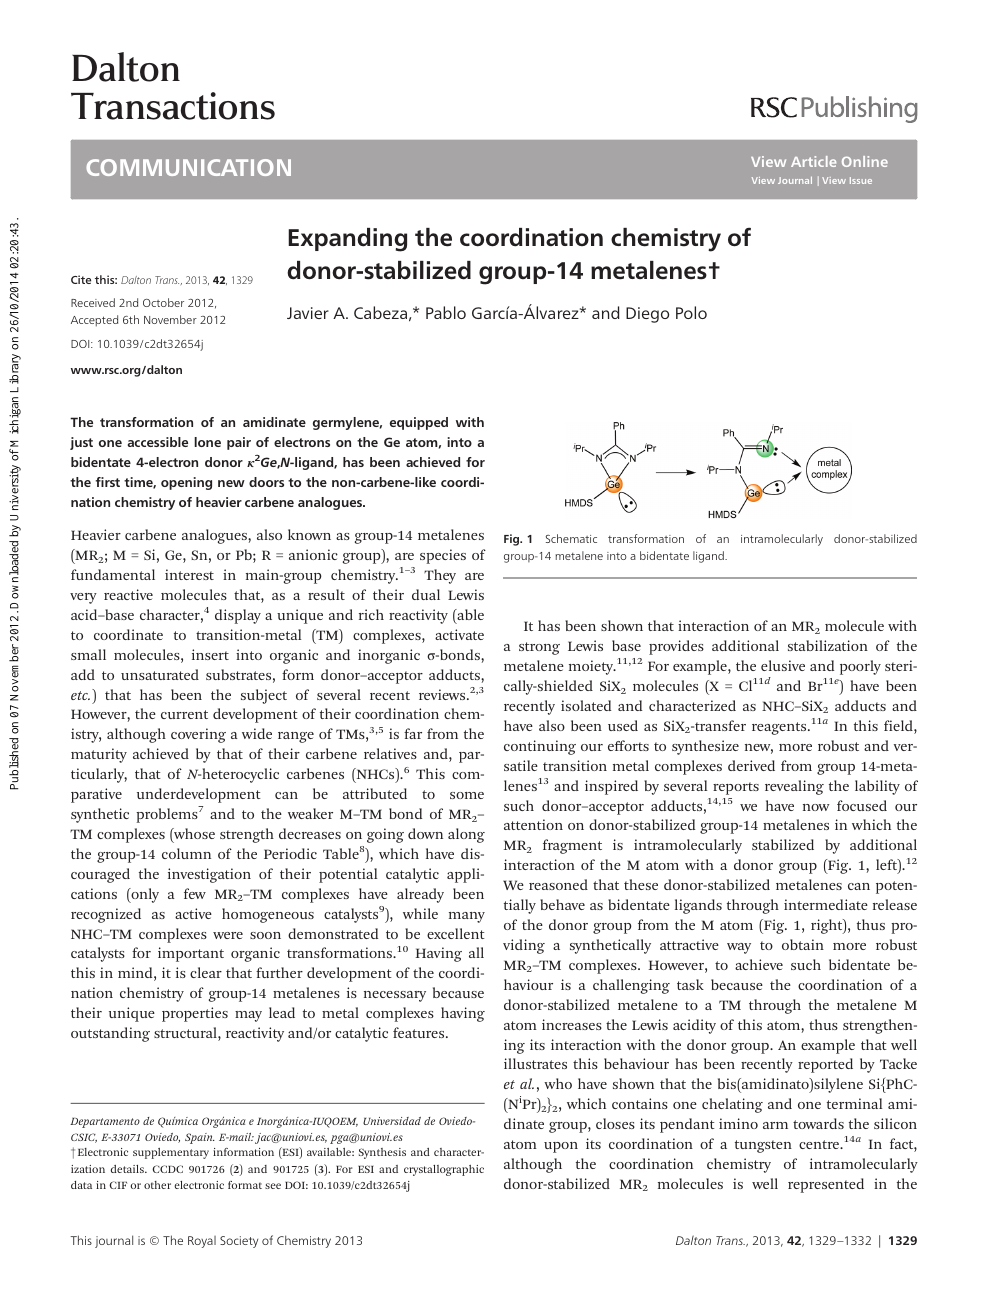 Awe Inspiring Expanding The Coordination Chemistry Of Donor Stabilized Group 14 Wiring Cloud Hisonuggs Outletorg